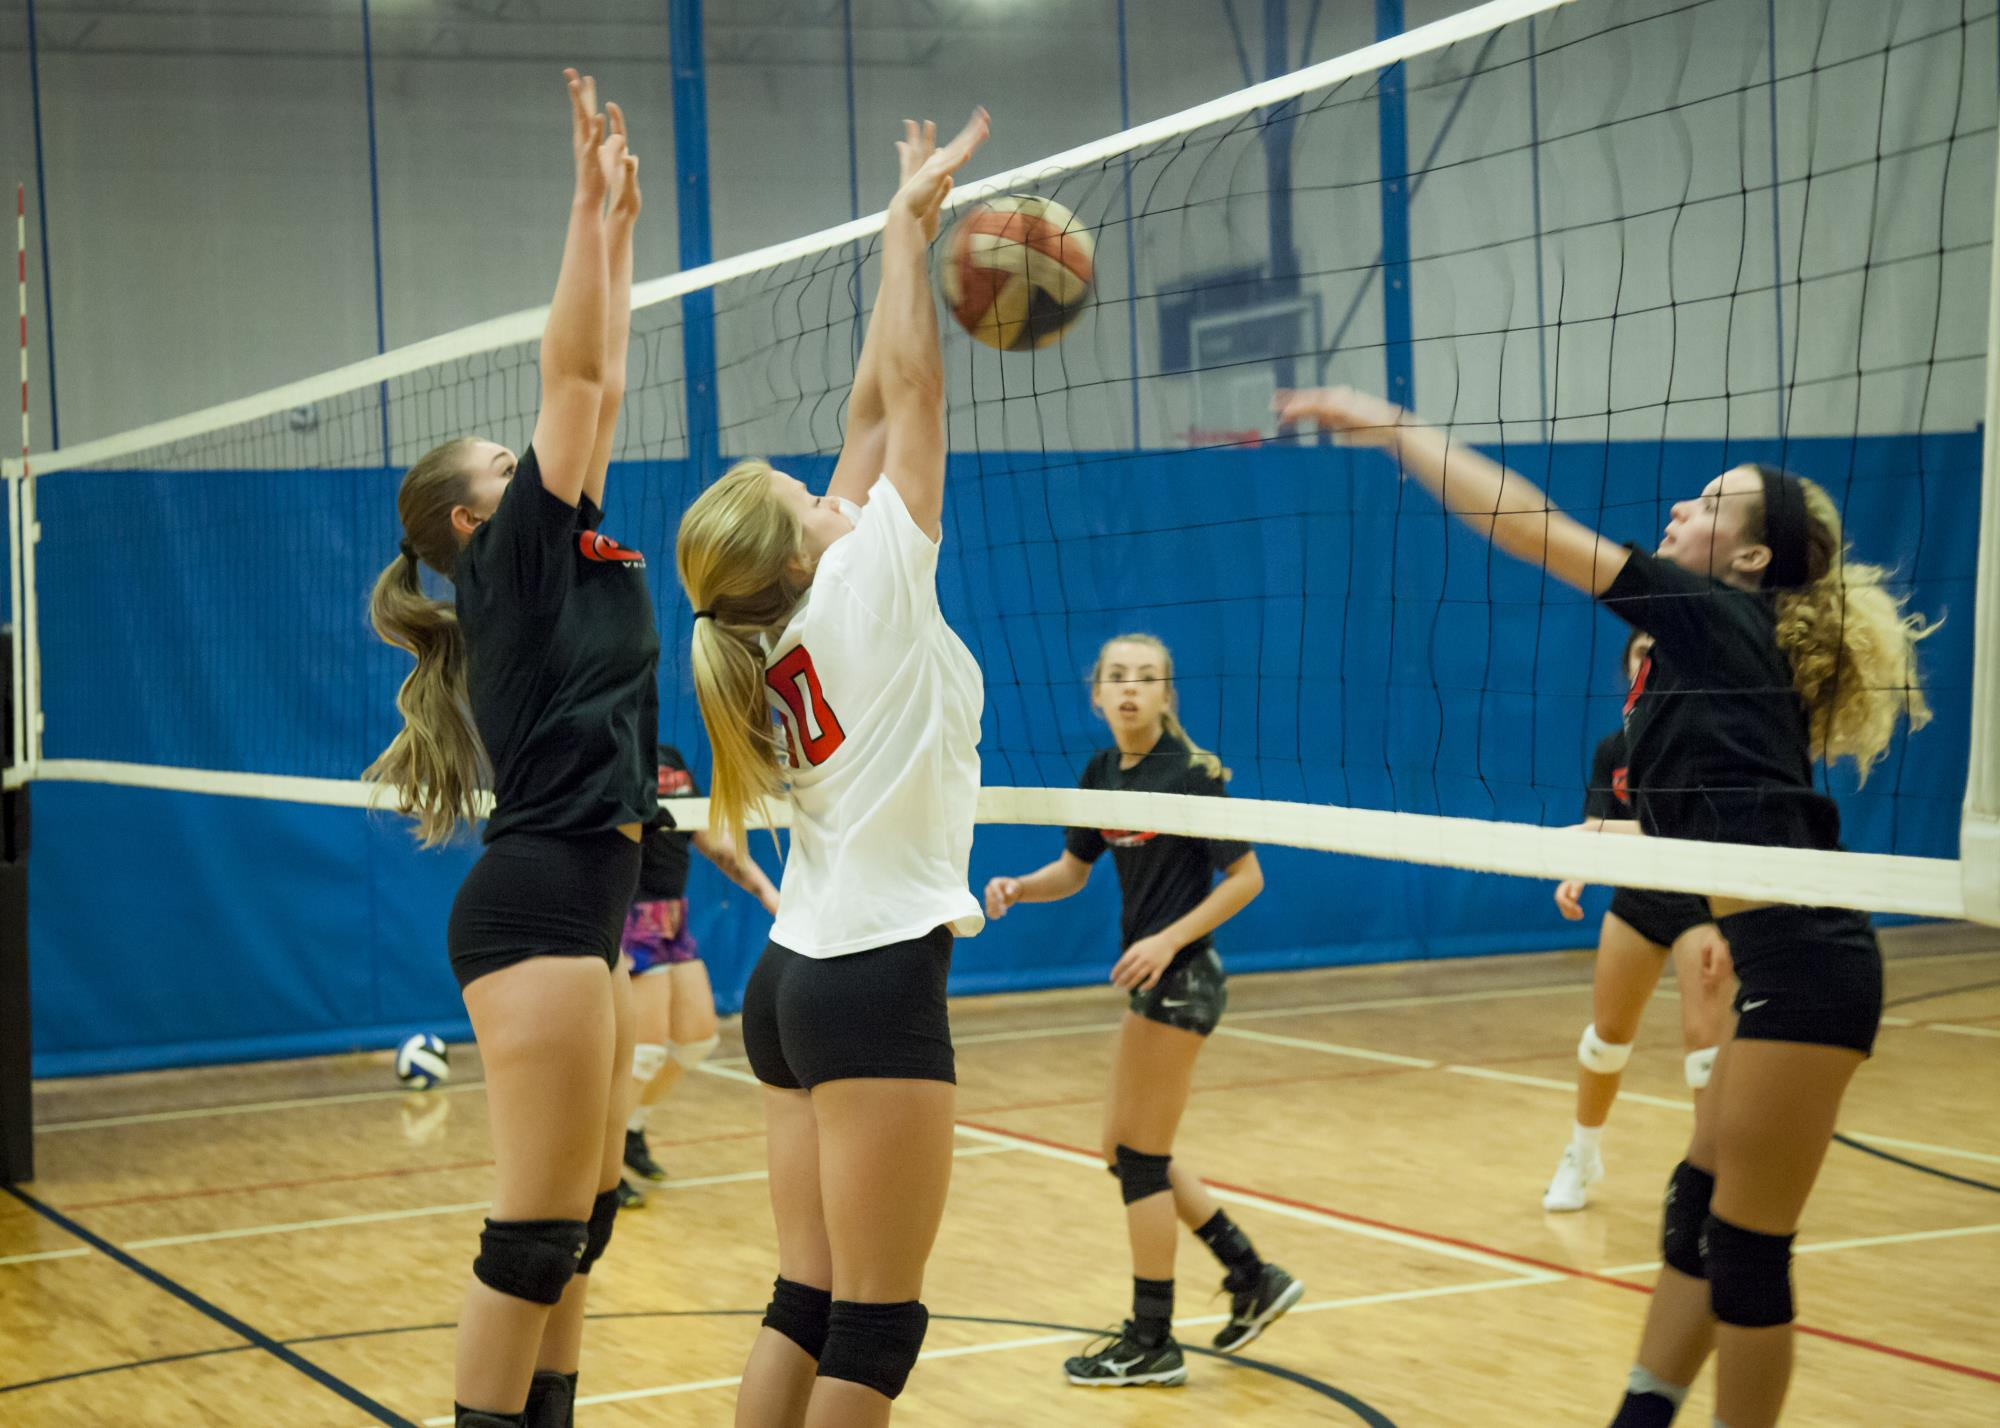 Girls playing volleyball with one girl spiking the ball